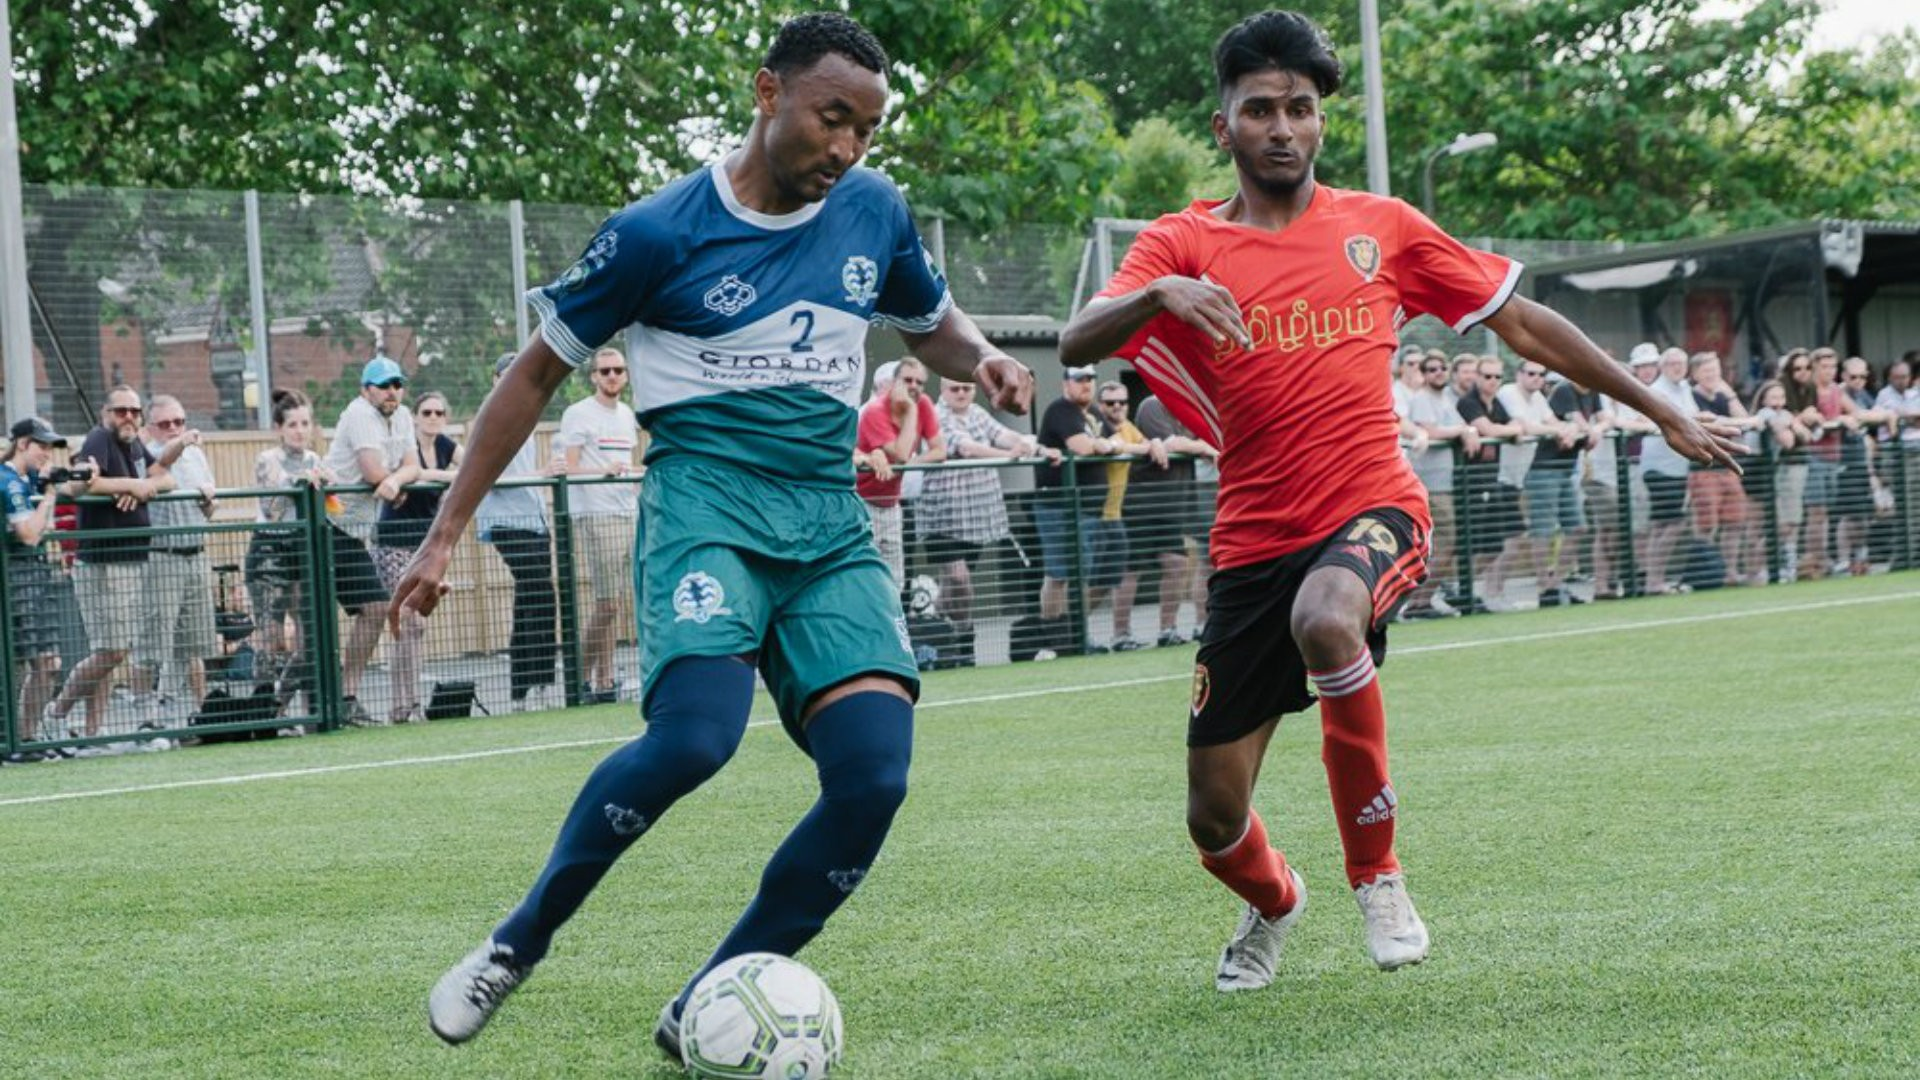 James Riley exhibits his signature finesse with the football at the CONIFA WFC2018 in a match against Tamil Eelam